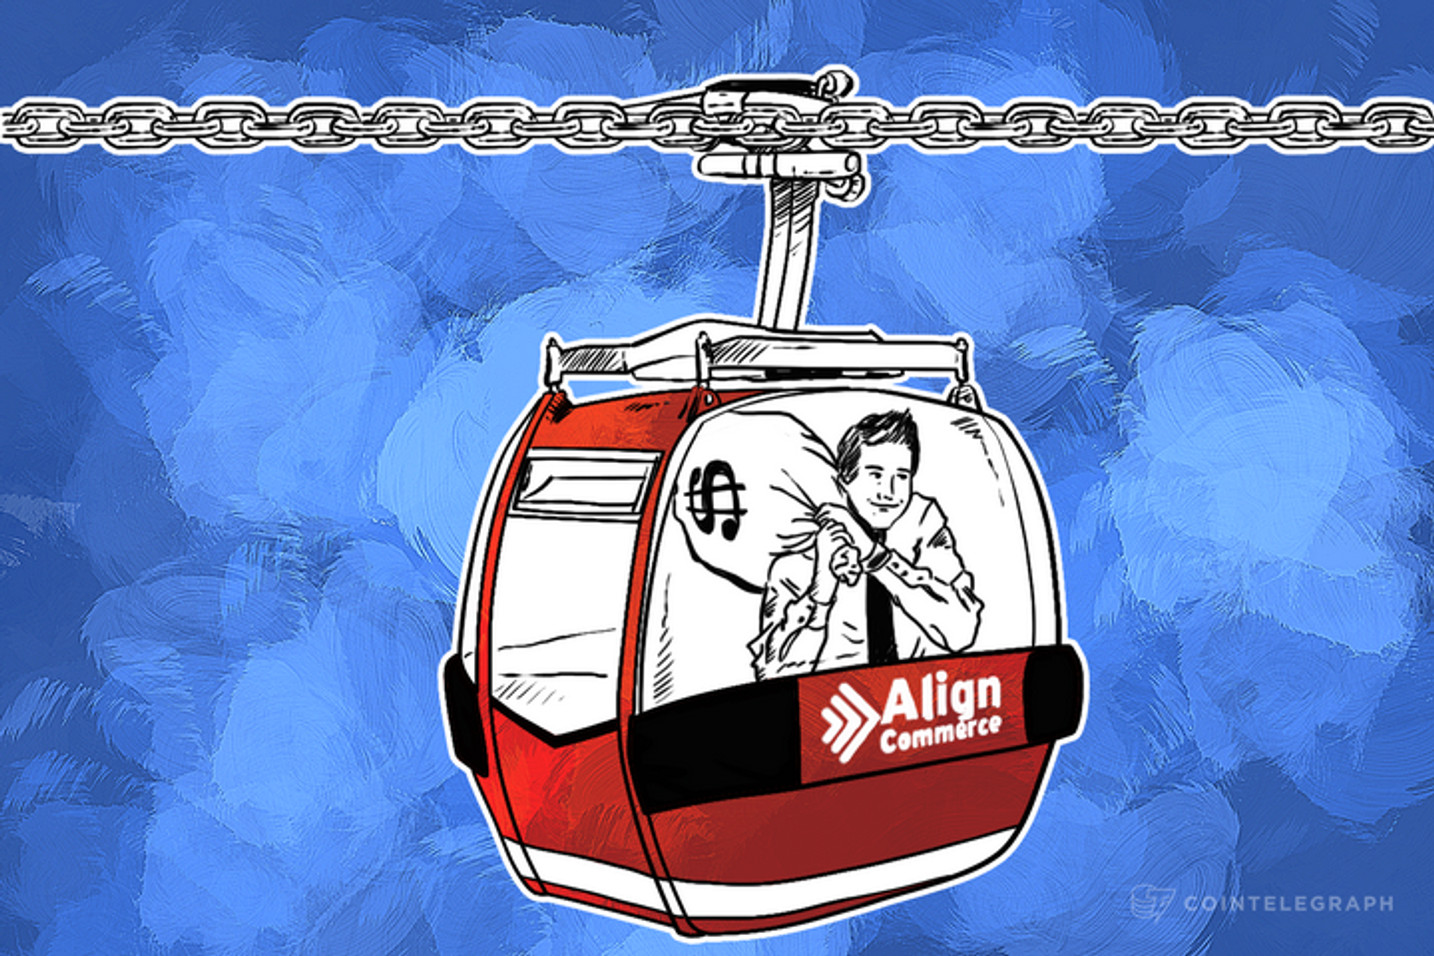 SF Startup Targets B2B Global Payments with Blockchain Rails, Public Beta Release